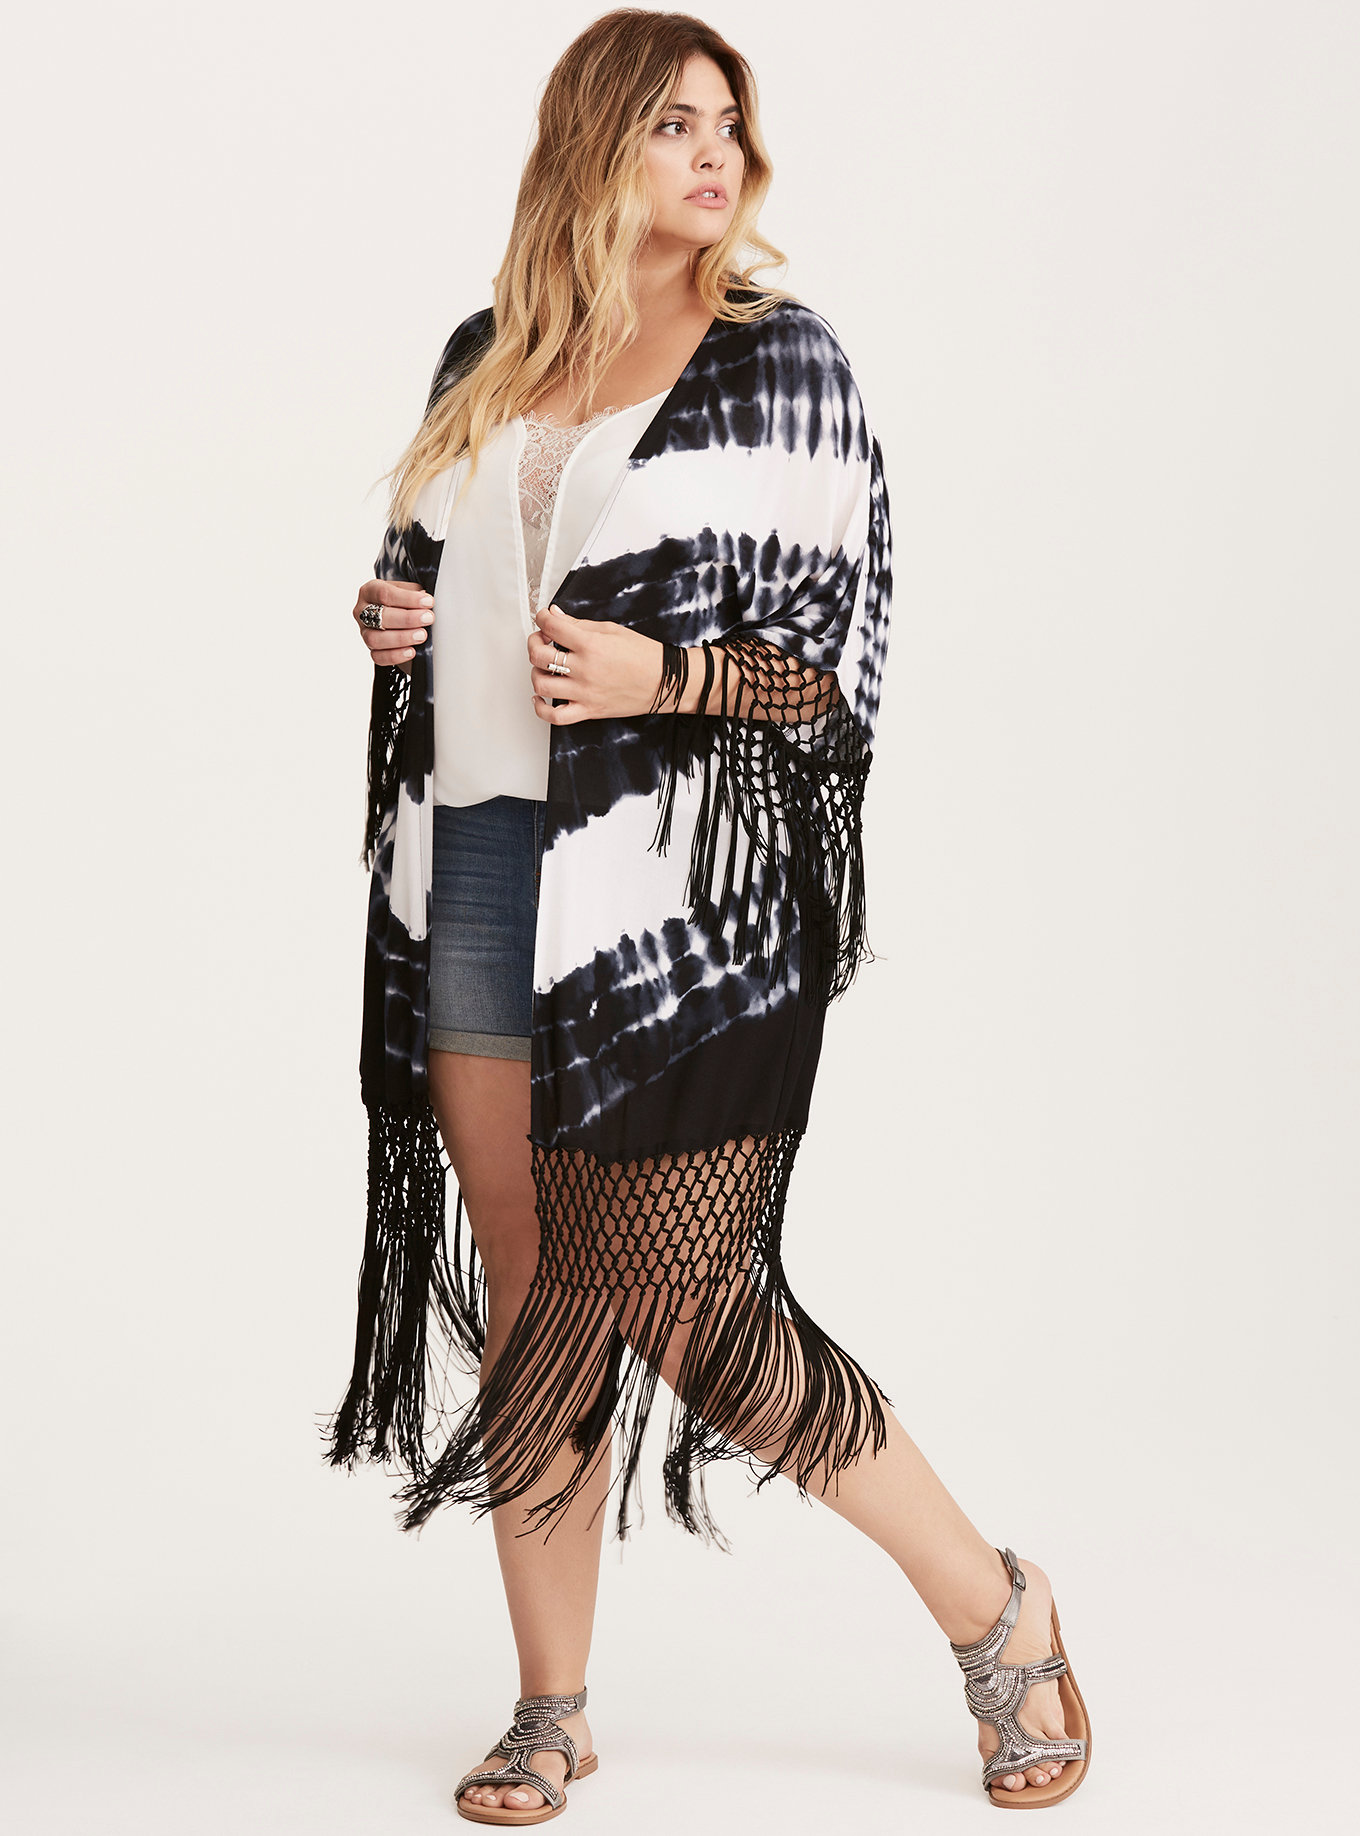 Missed Coachella This Year? 8 Plus Size Festi Fashions To Rock Anyway!